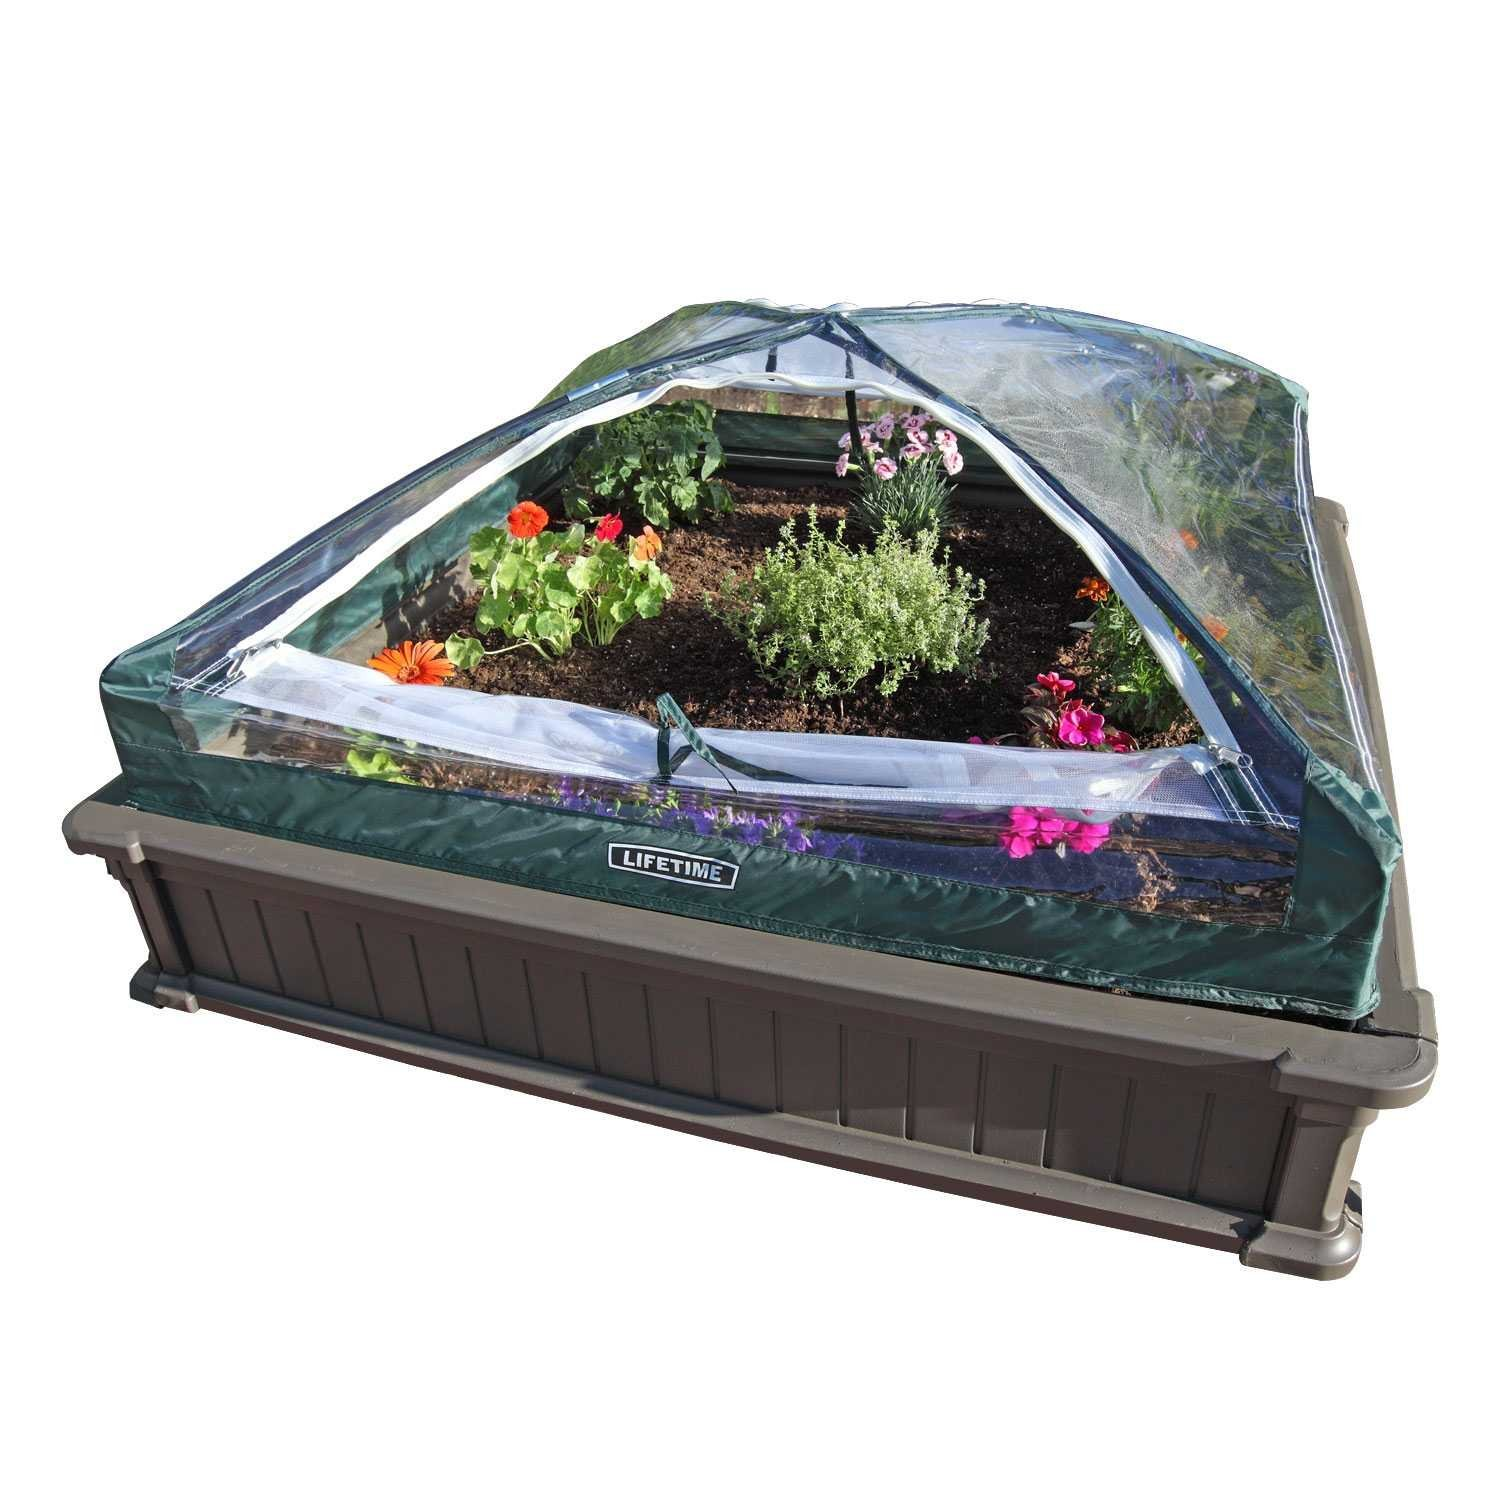 Amazoncom Lifetime 60053 Raised Garde Bed Kit 2 Beds and 1